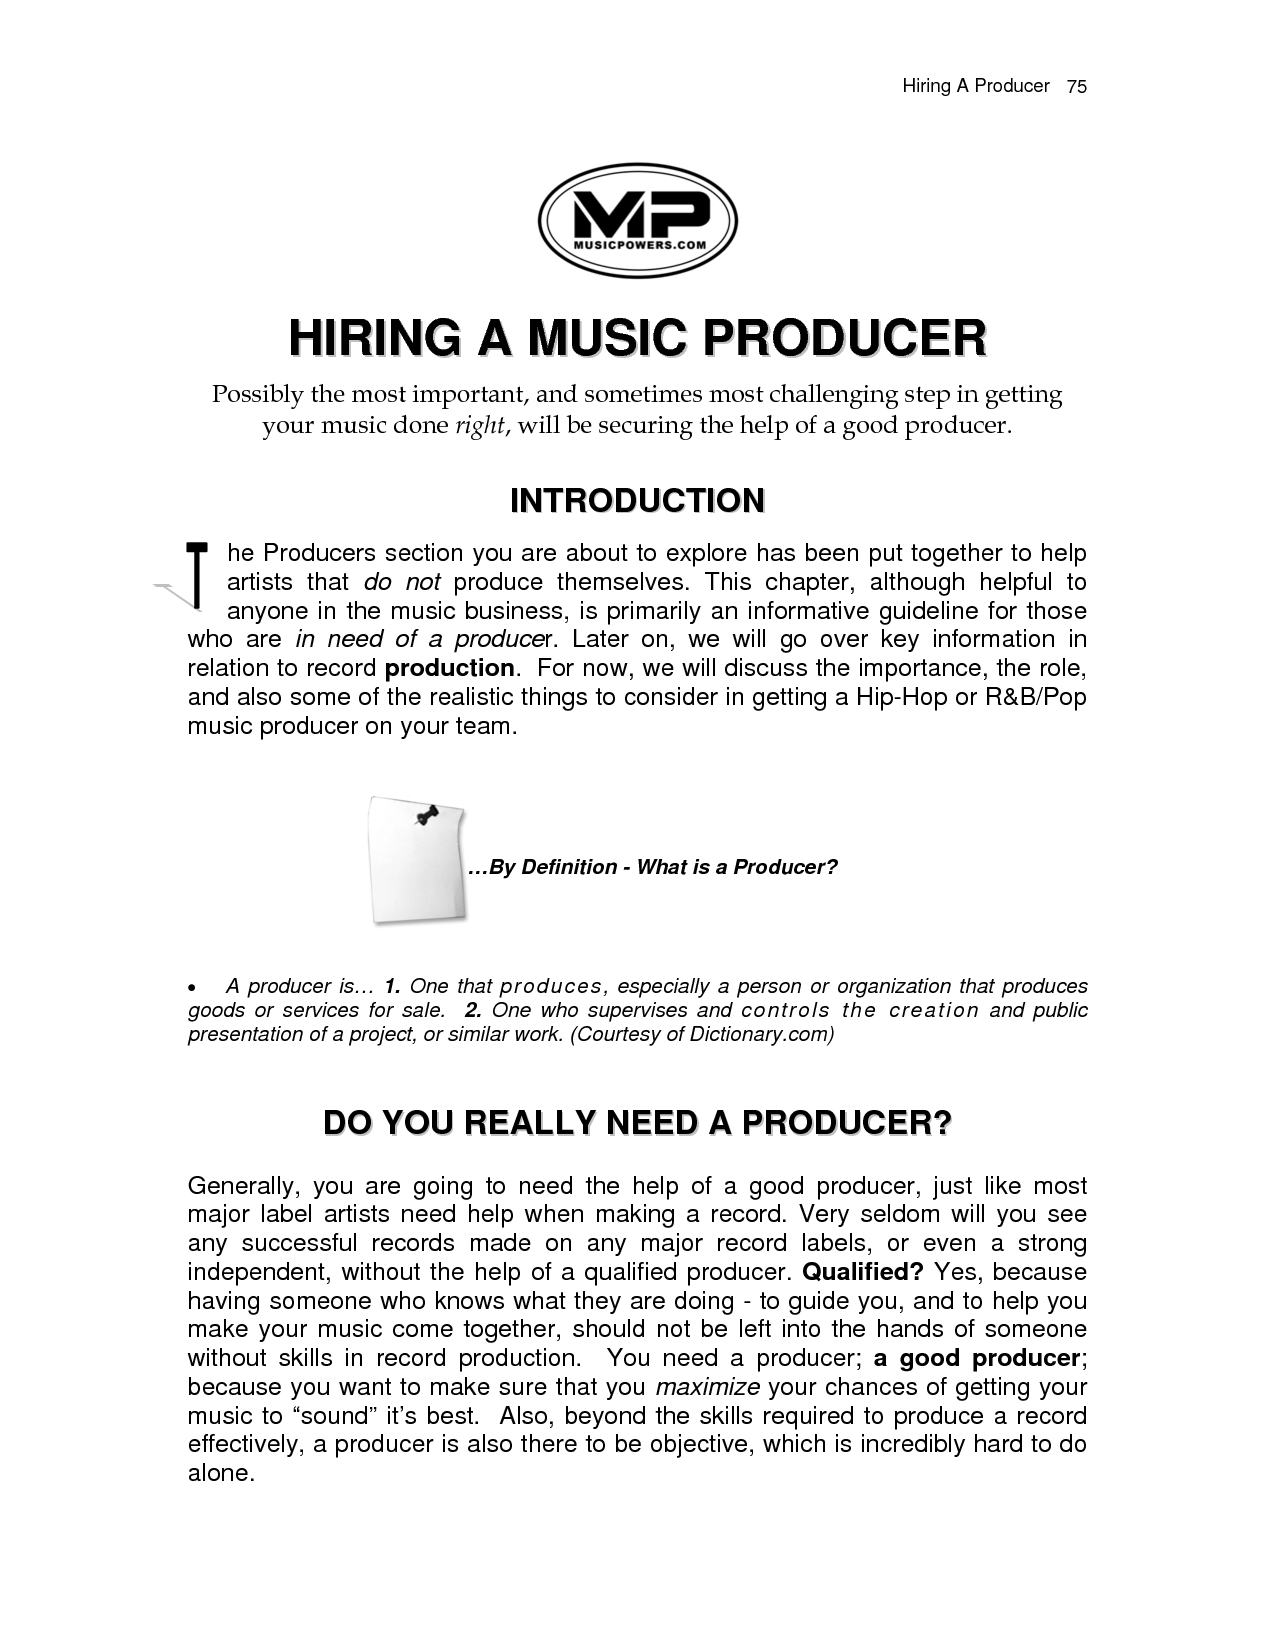 Producer Label  Music Producer Record Label Contract By Iiu